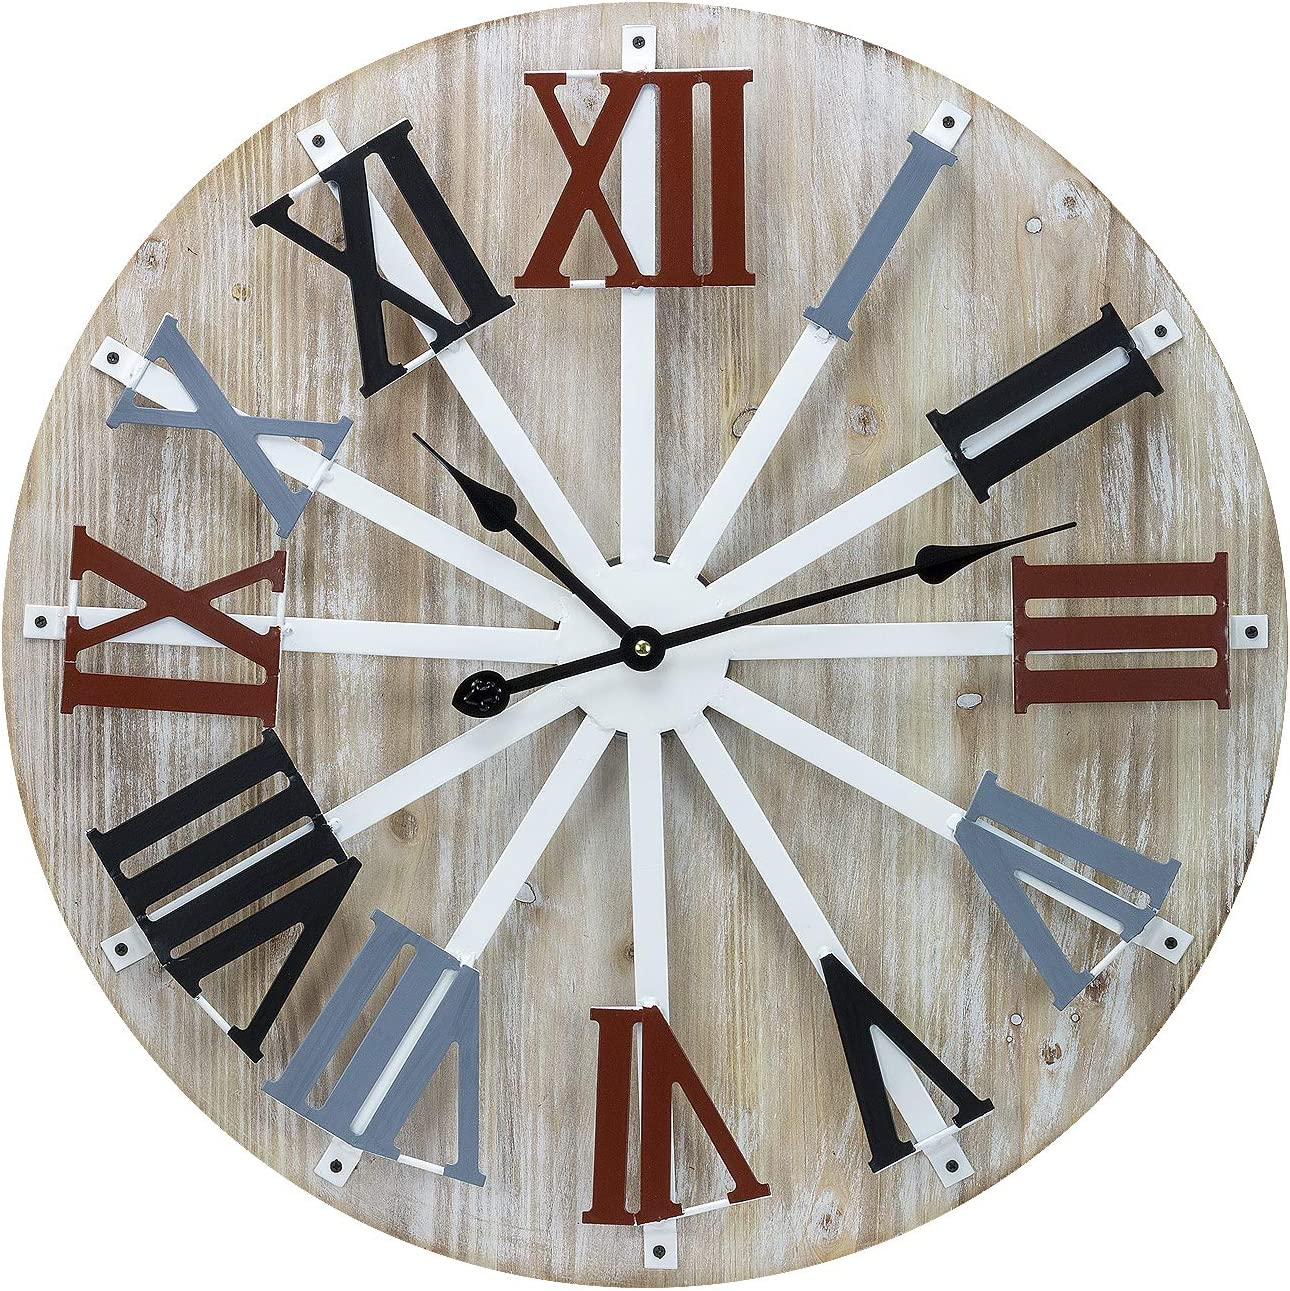 Sorbus Large Decorative Wall Clock, 24 Round Oversized Centurian Roman Numeral Farmhouse Style Modern Home Decor Ideal for Living Room, Analog Wooden Metal Colorful Clock